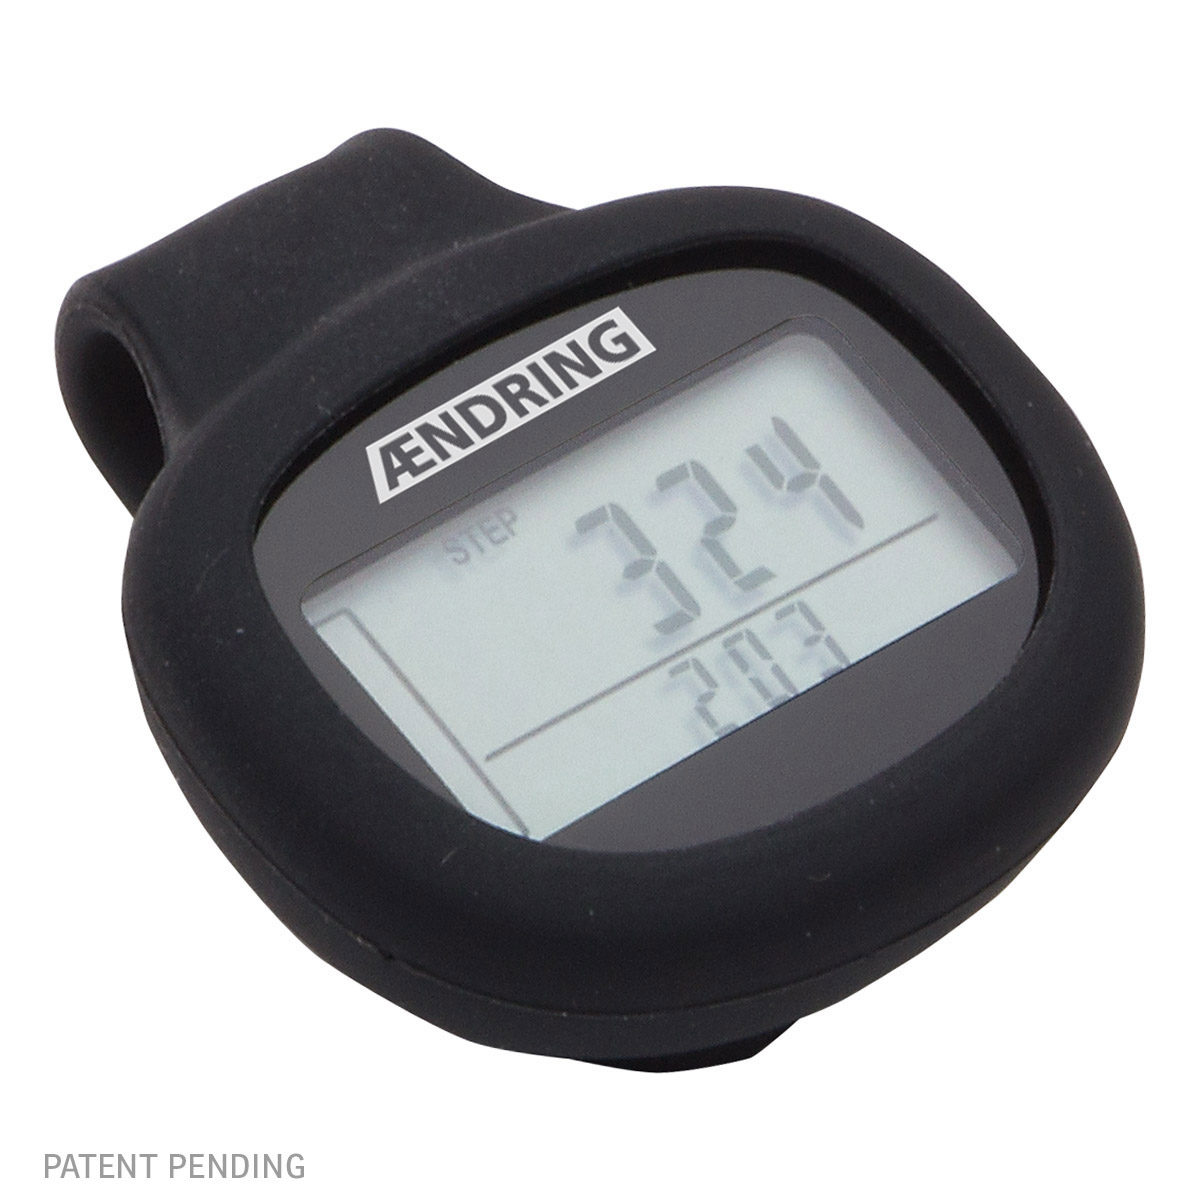 Show Or Stow 3D Pedometer, WHF-SW15, 1 Colour Imprint